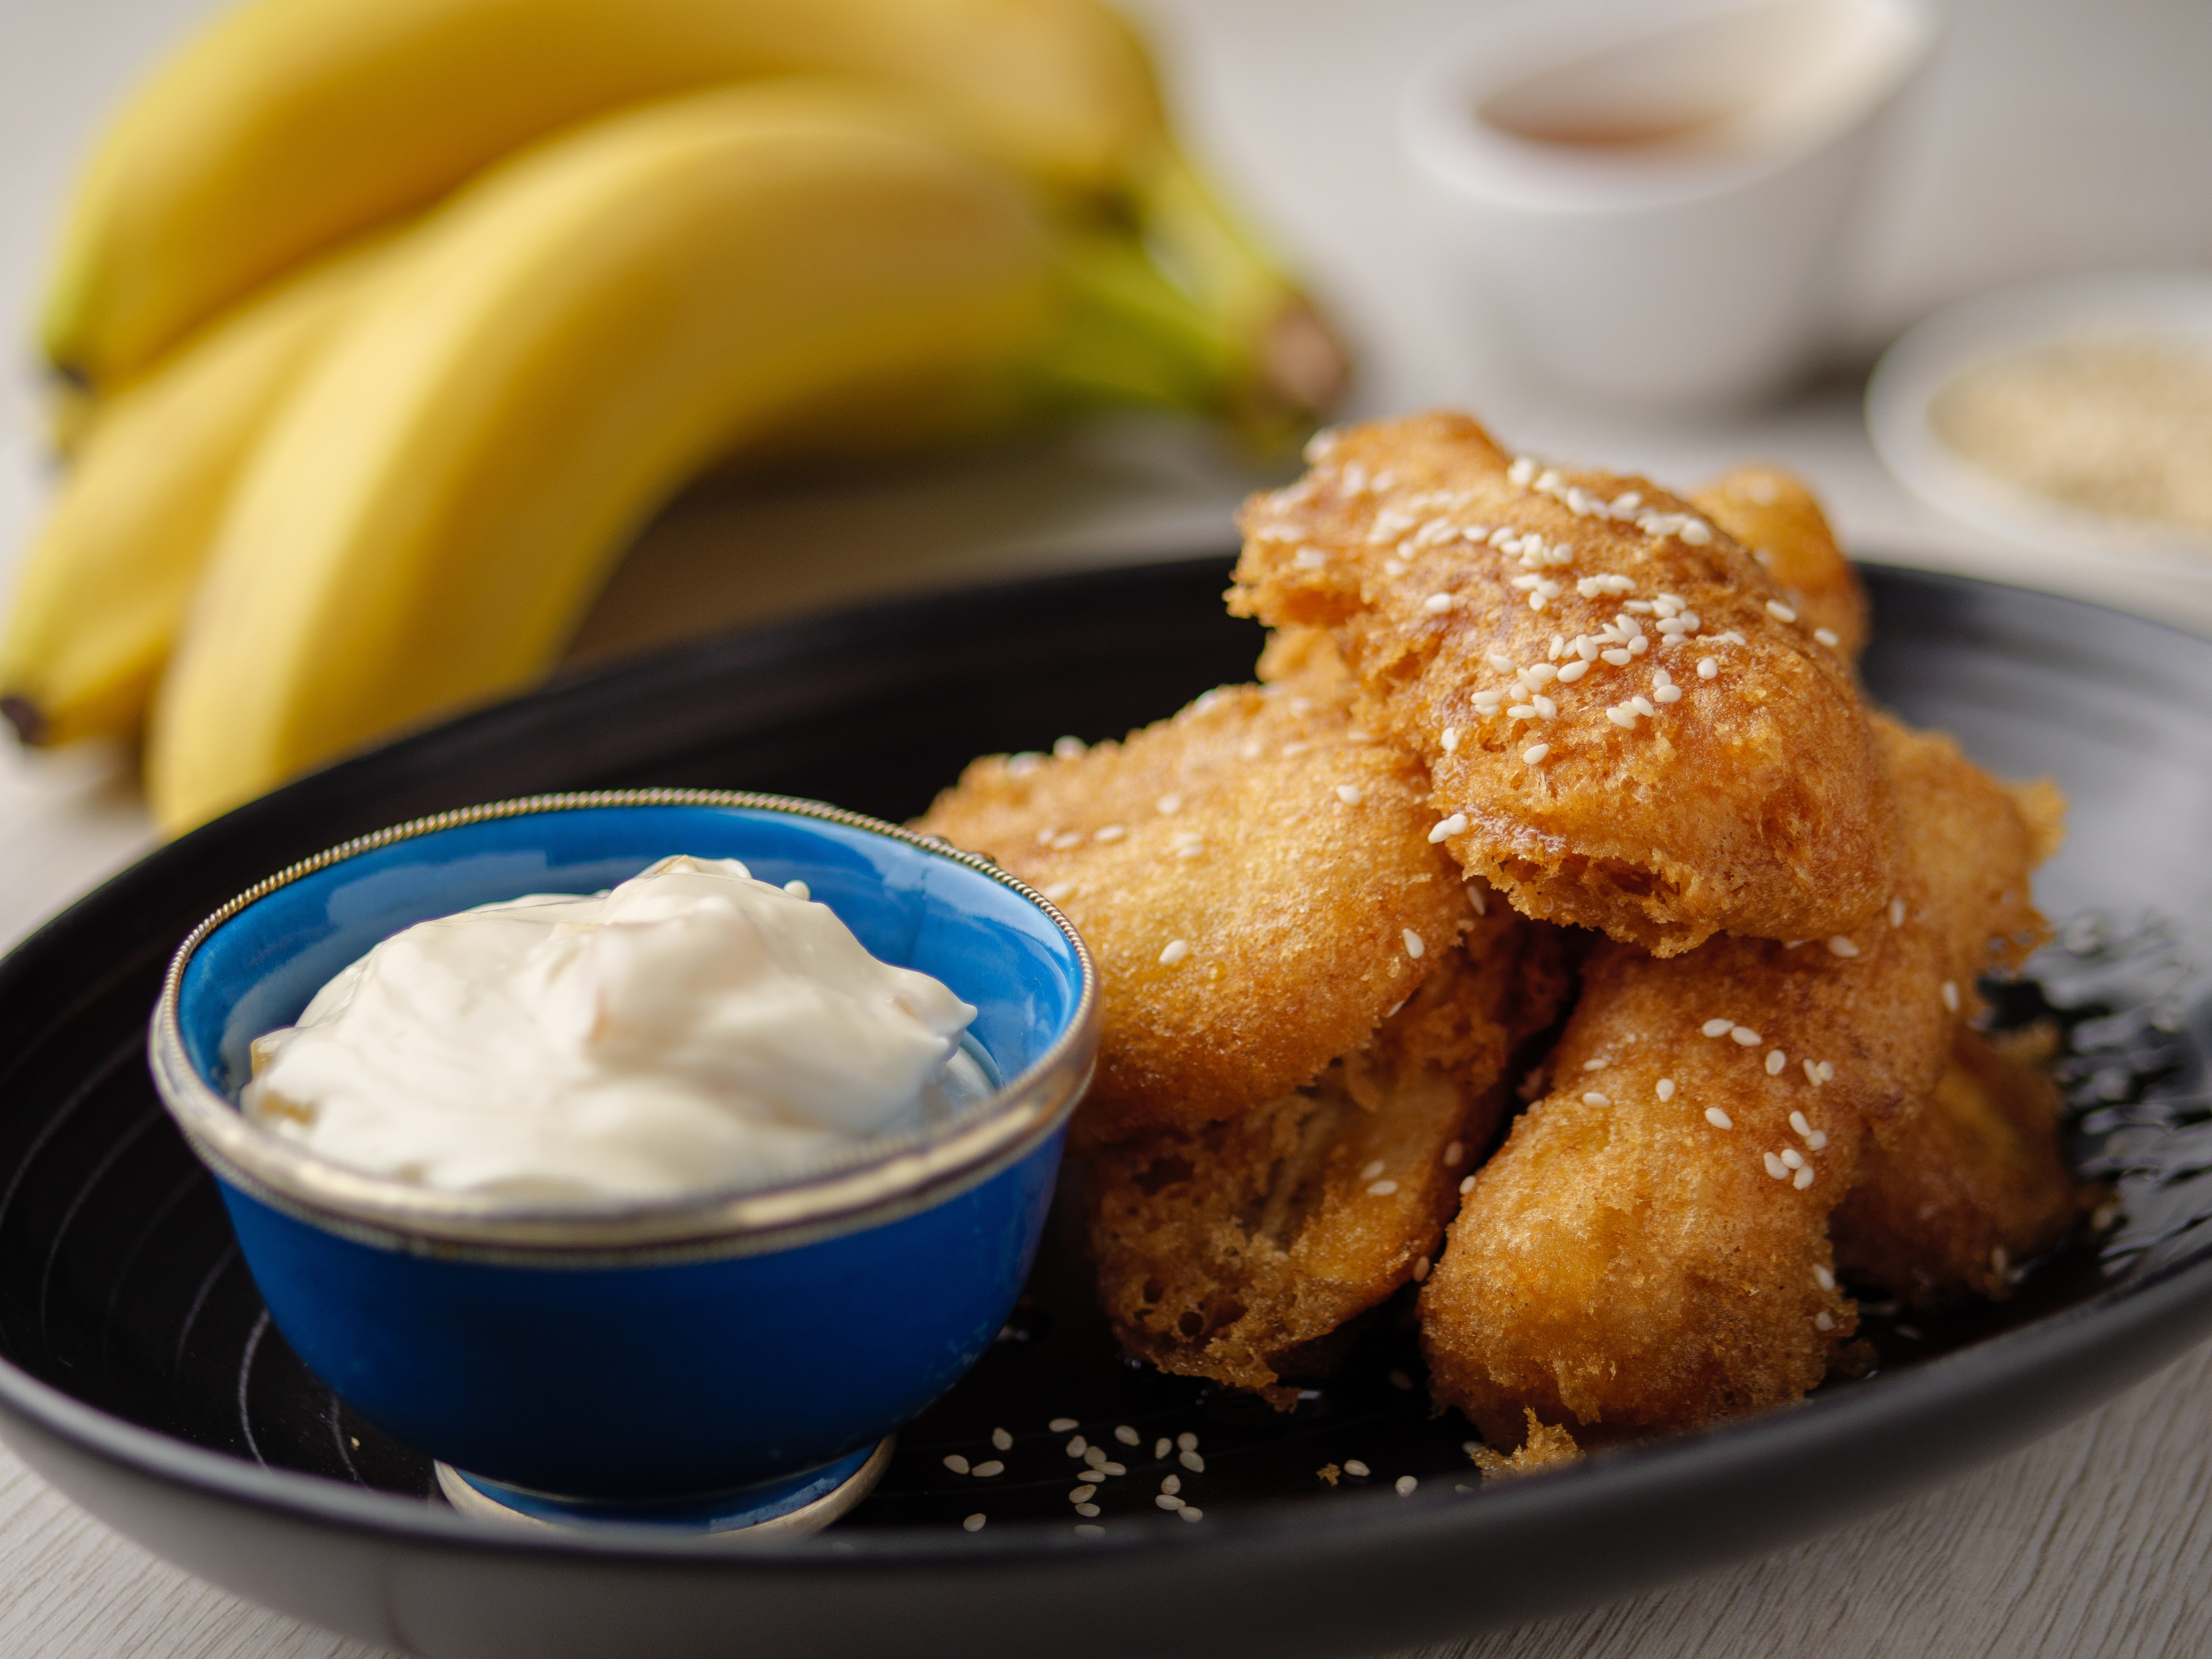 Spiced Banana Fritters